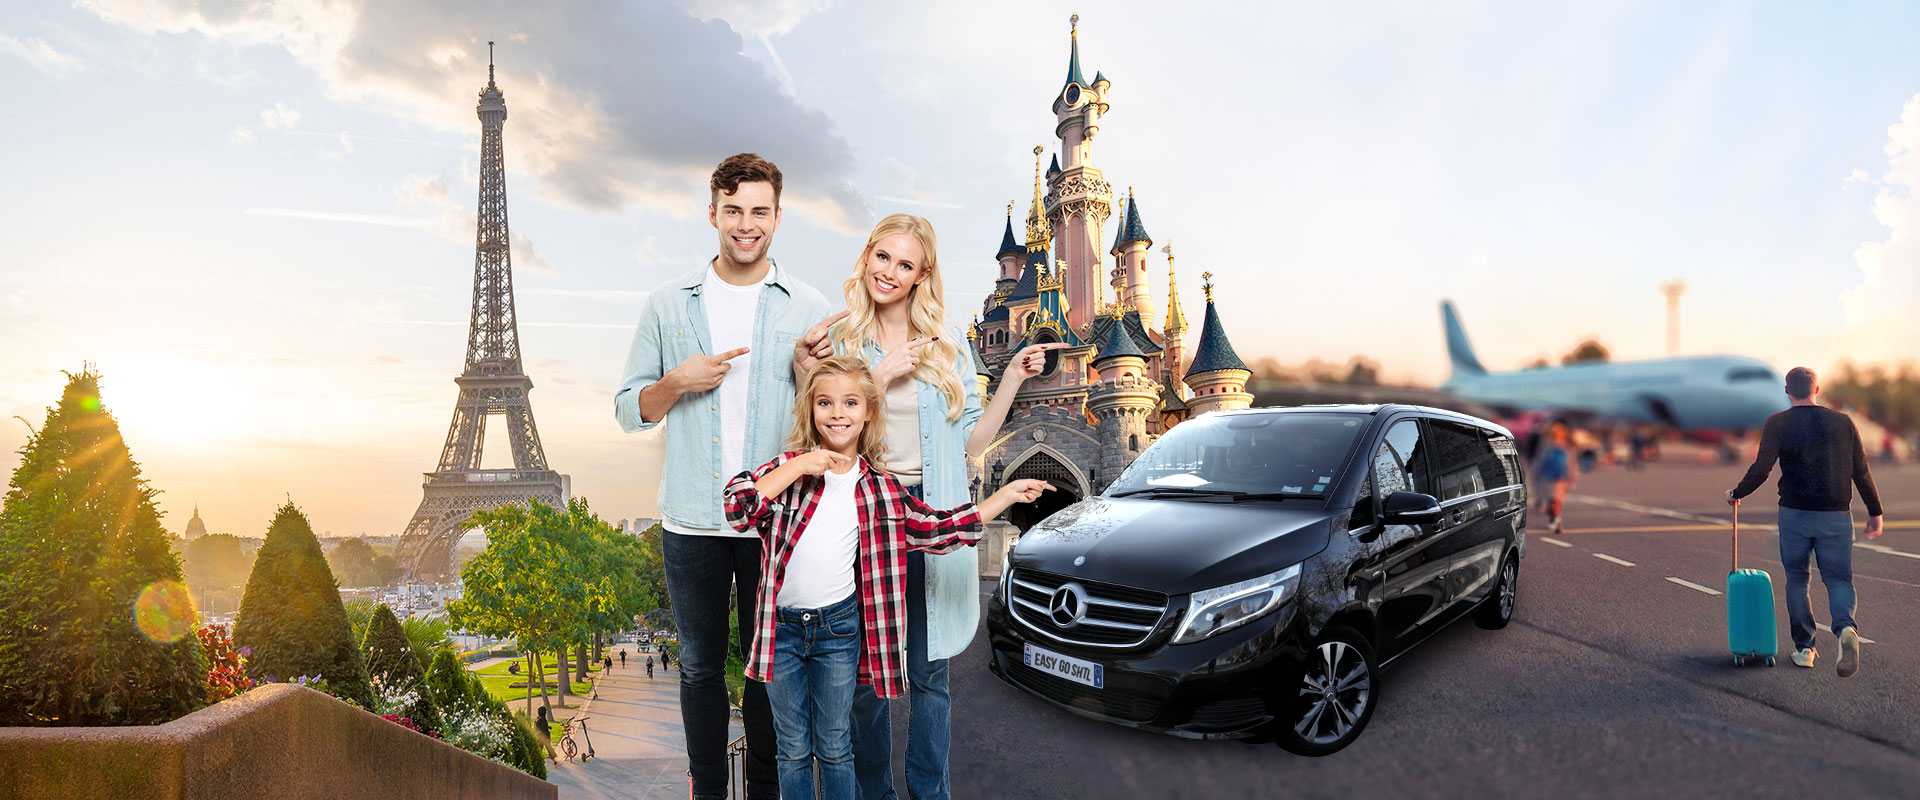 Paris and Disneyland Private Airport Transfers